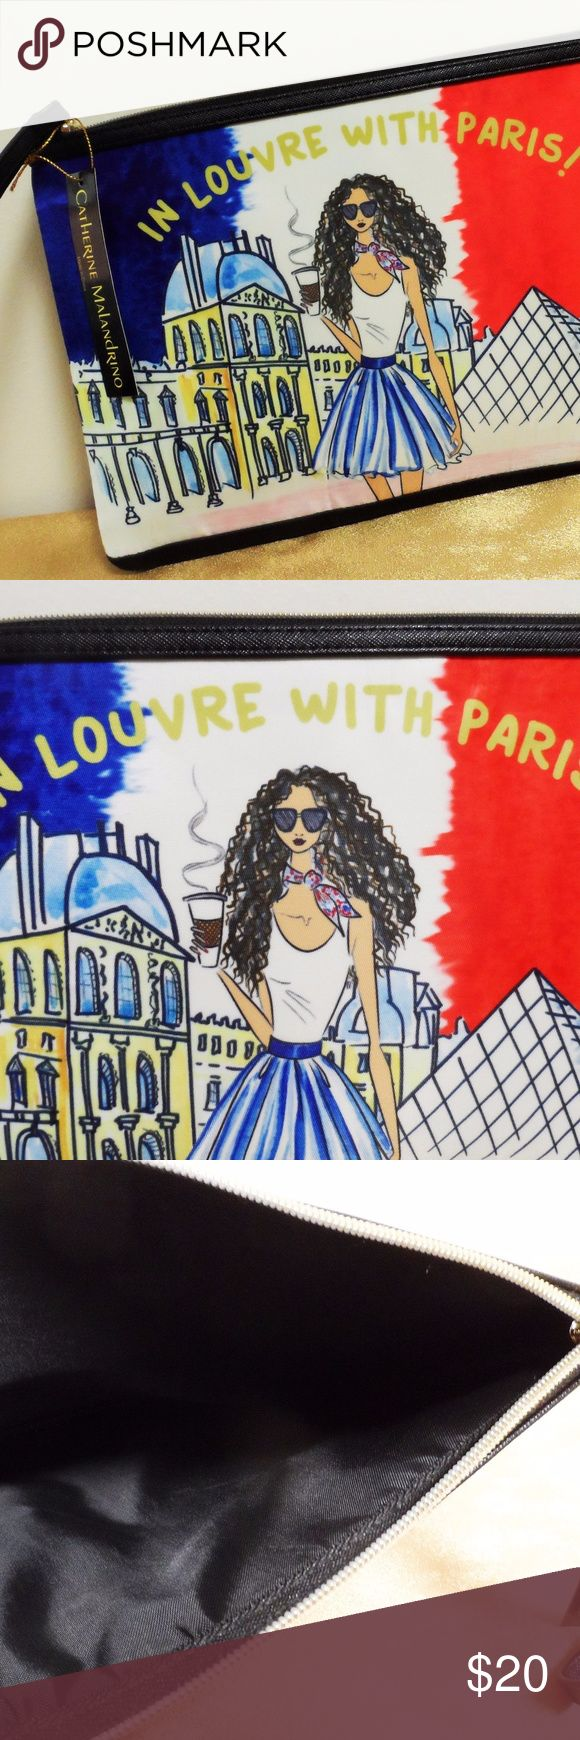 Catherine Malandrino In Louvre w/Paris Travel Bag Catherine Malandrino In Louvre With Paris Travel Makeup Accessory Storage Pouch, new with designer identifier tag, no retail tag. Due to large size with wristlet strap (does NOT detach), could be used as a cosmetic/makeup bag but also hair supplies, school supplies, etc.  Full top zipper, wipe clean slightly shiny nylon and PVC type material on the outside, nylon inside.  No inside pockets. Catherine Malandrino Bags Cosmetic Bags & Cases